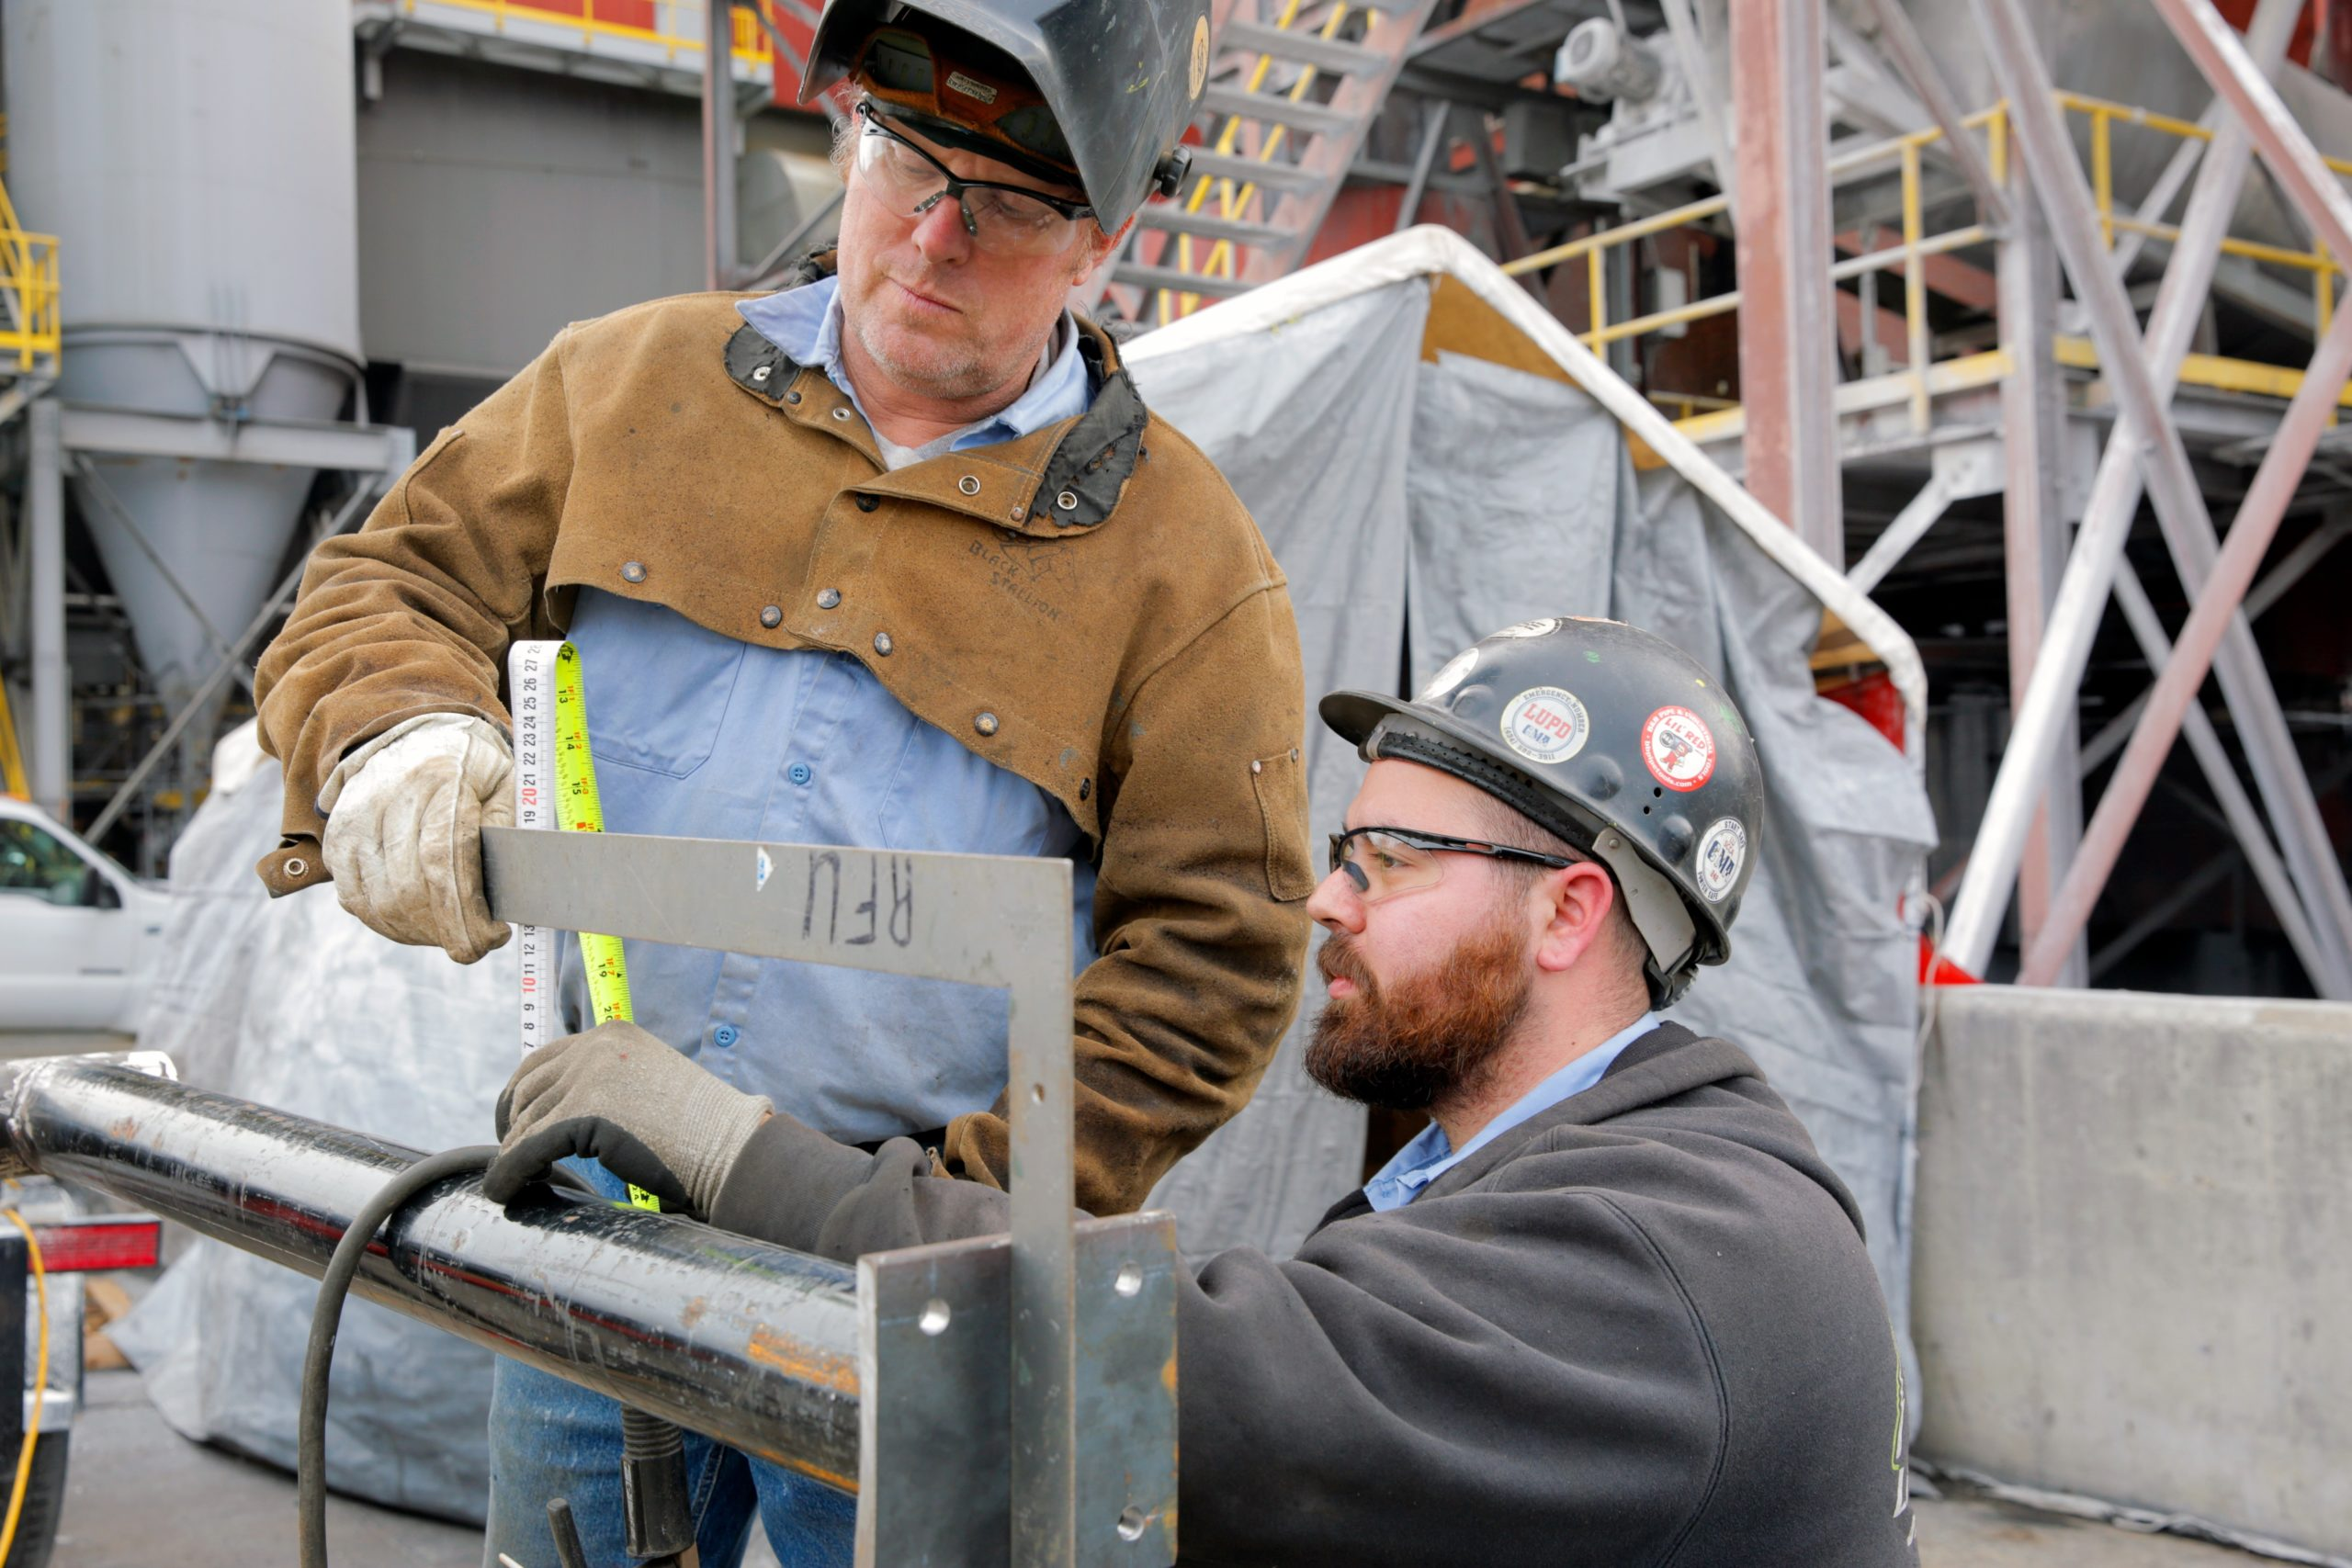 Welders and Pipe fitters install Rentech D-Type water tube boiler at Virginia Tech